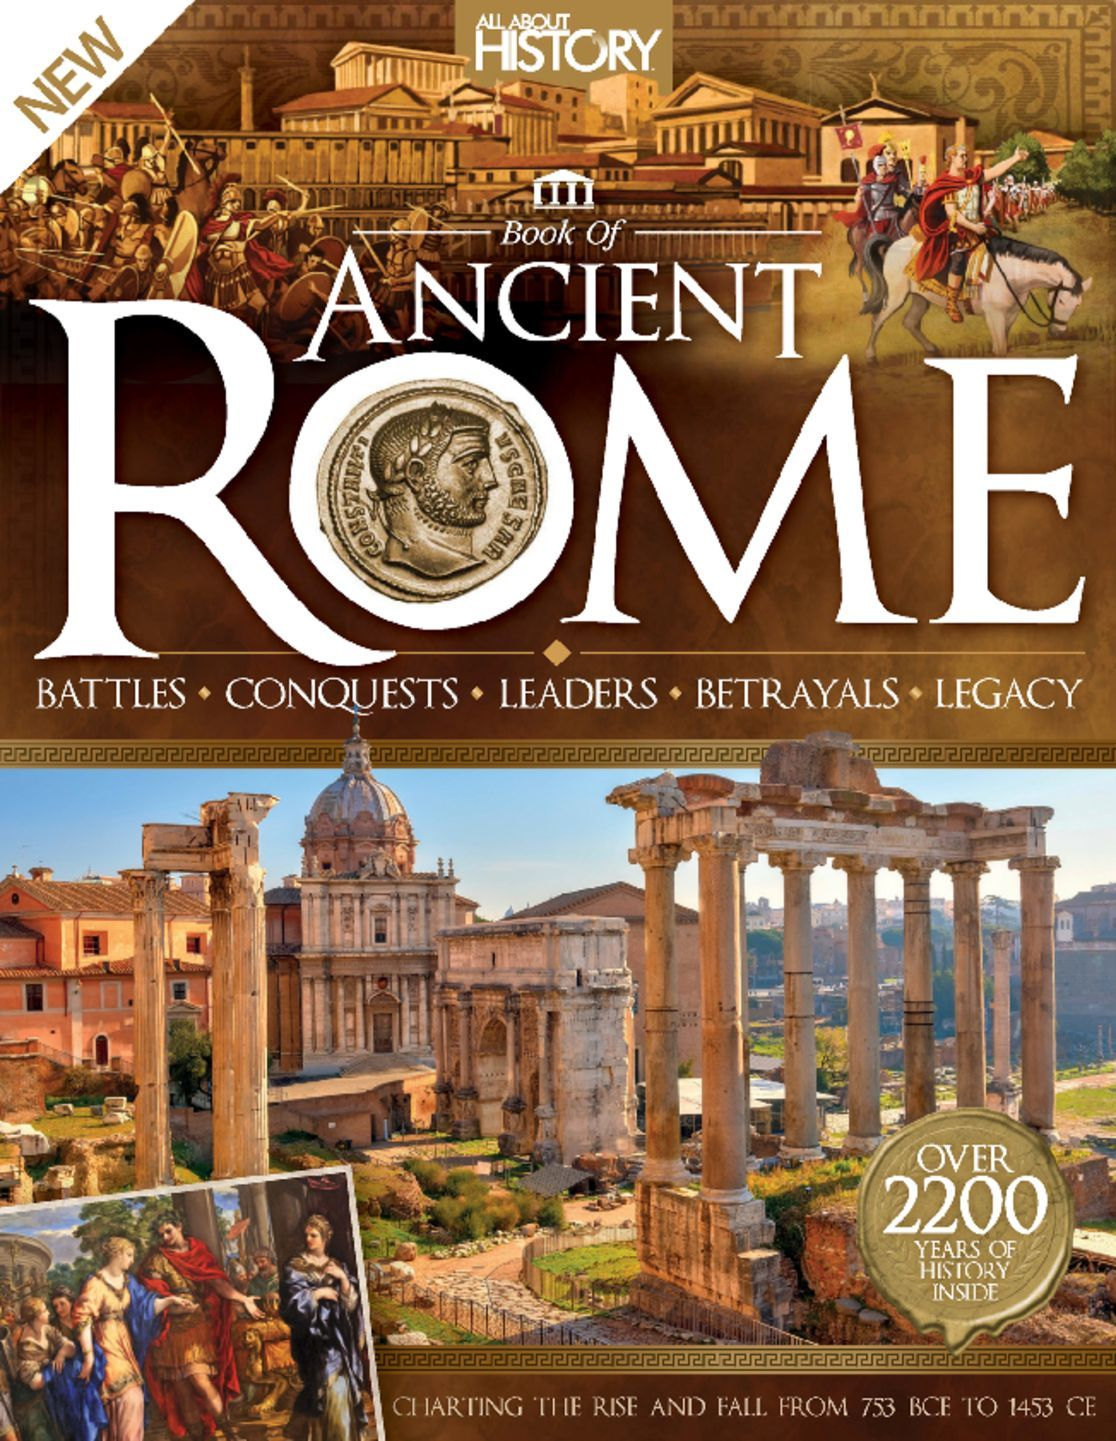 All About History Book of Ancient Rome Digital